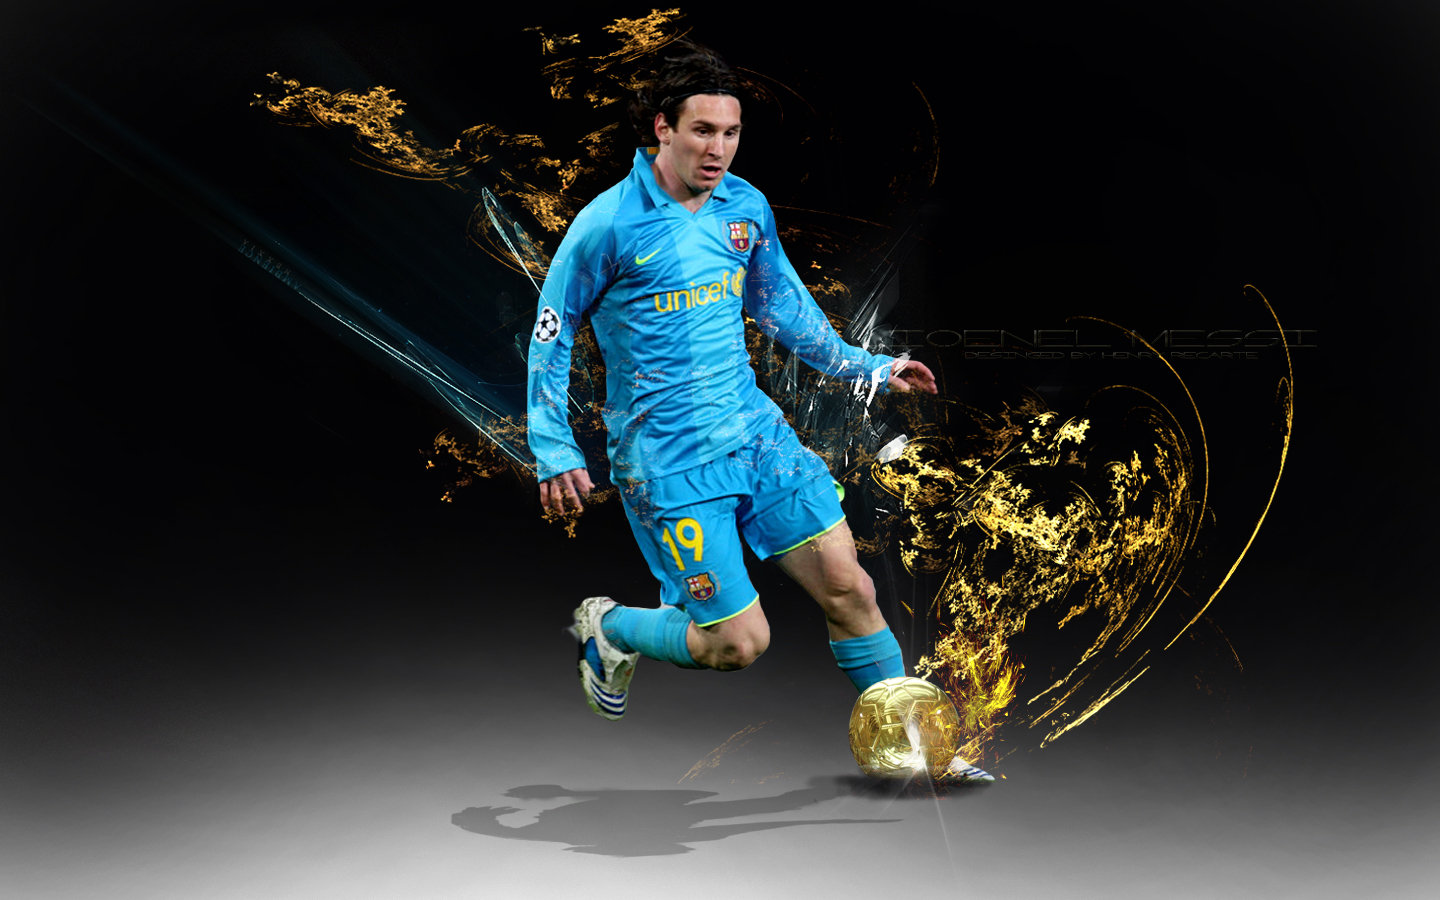 Collection of Messi Wallpaper Hd on HDWallpapers 1440x900